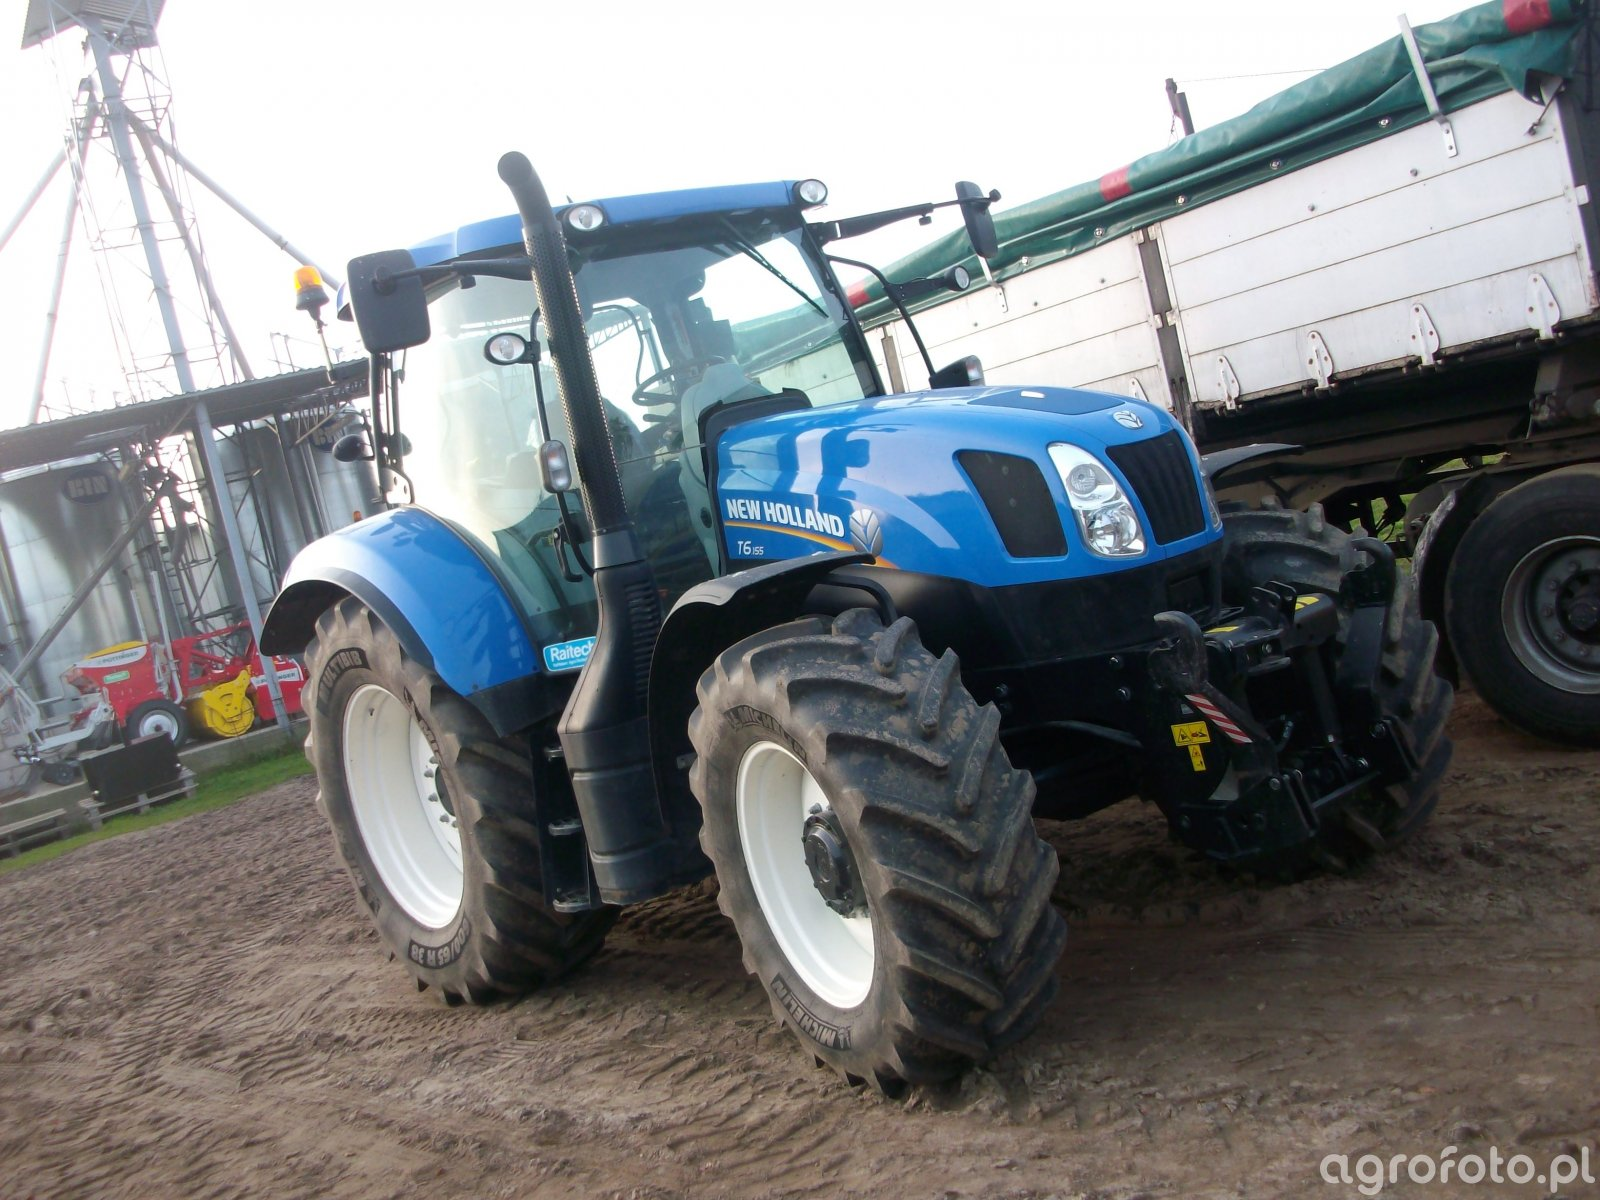 New Holland t6 155